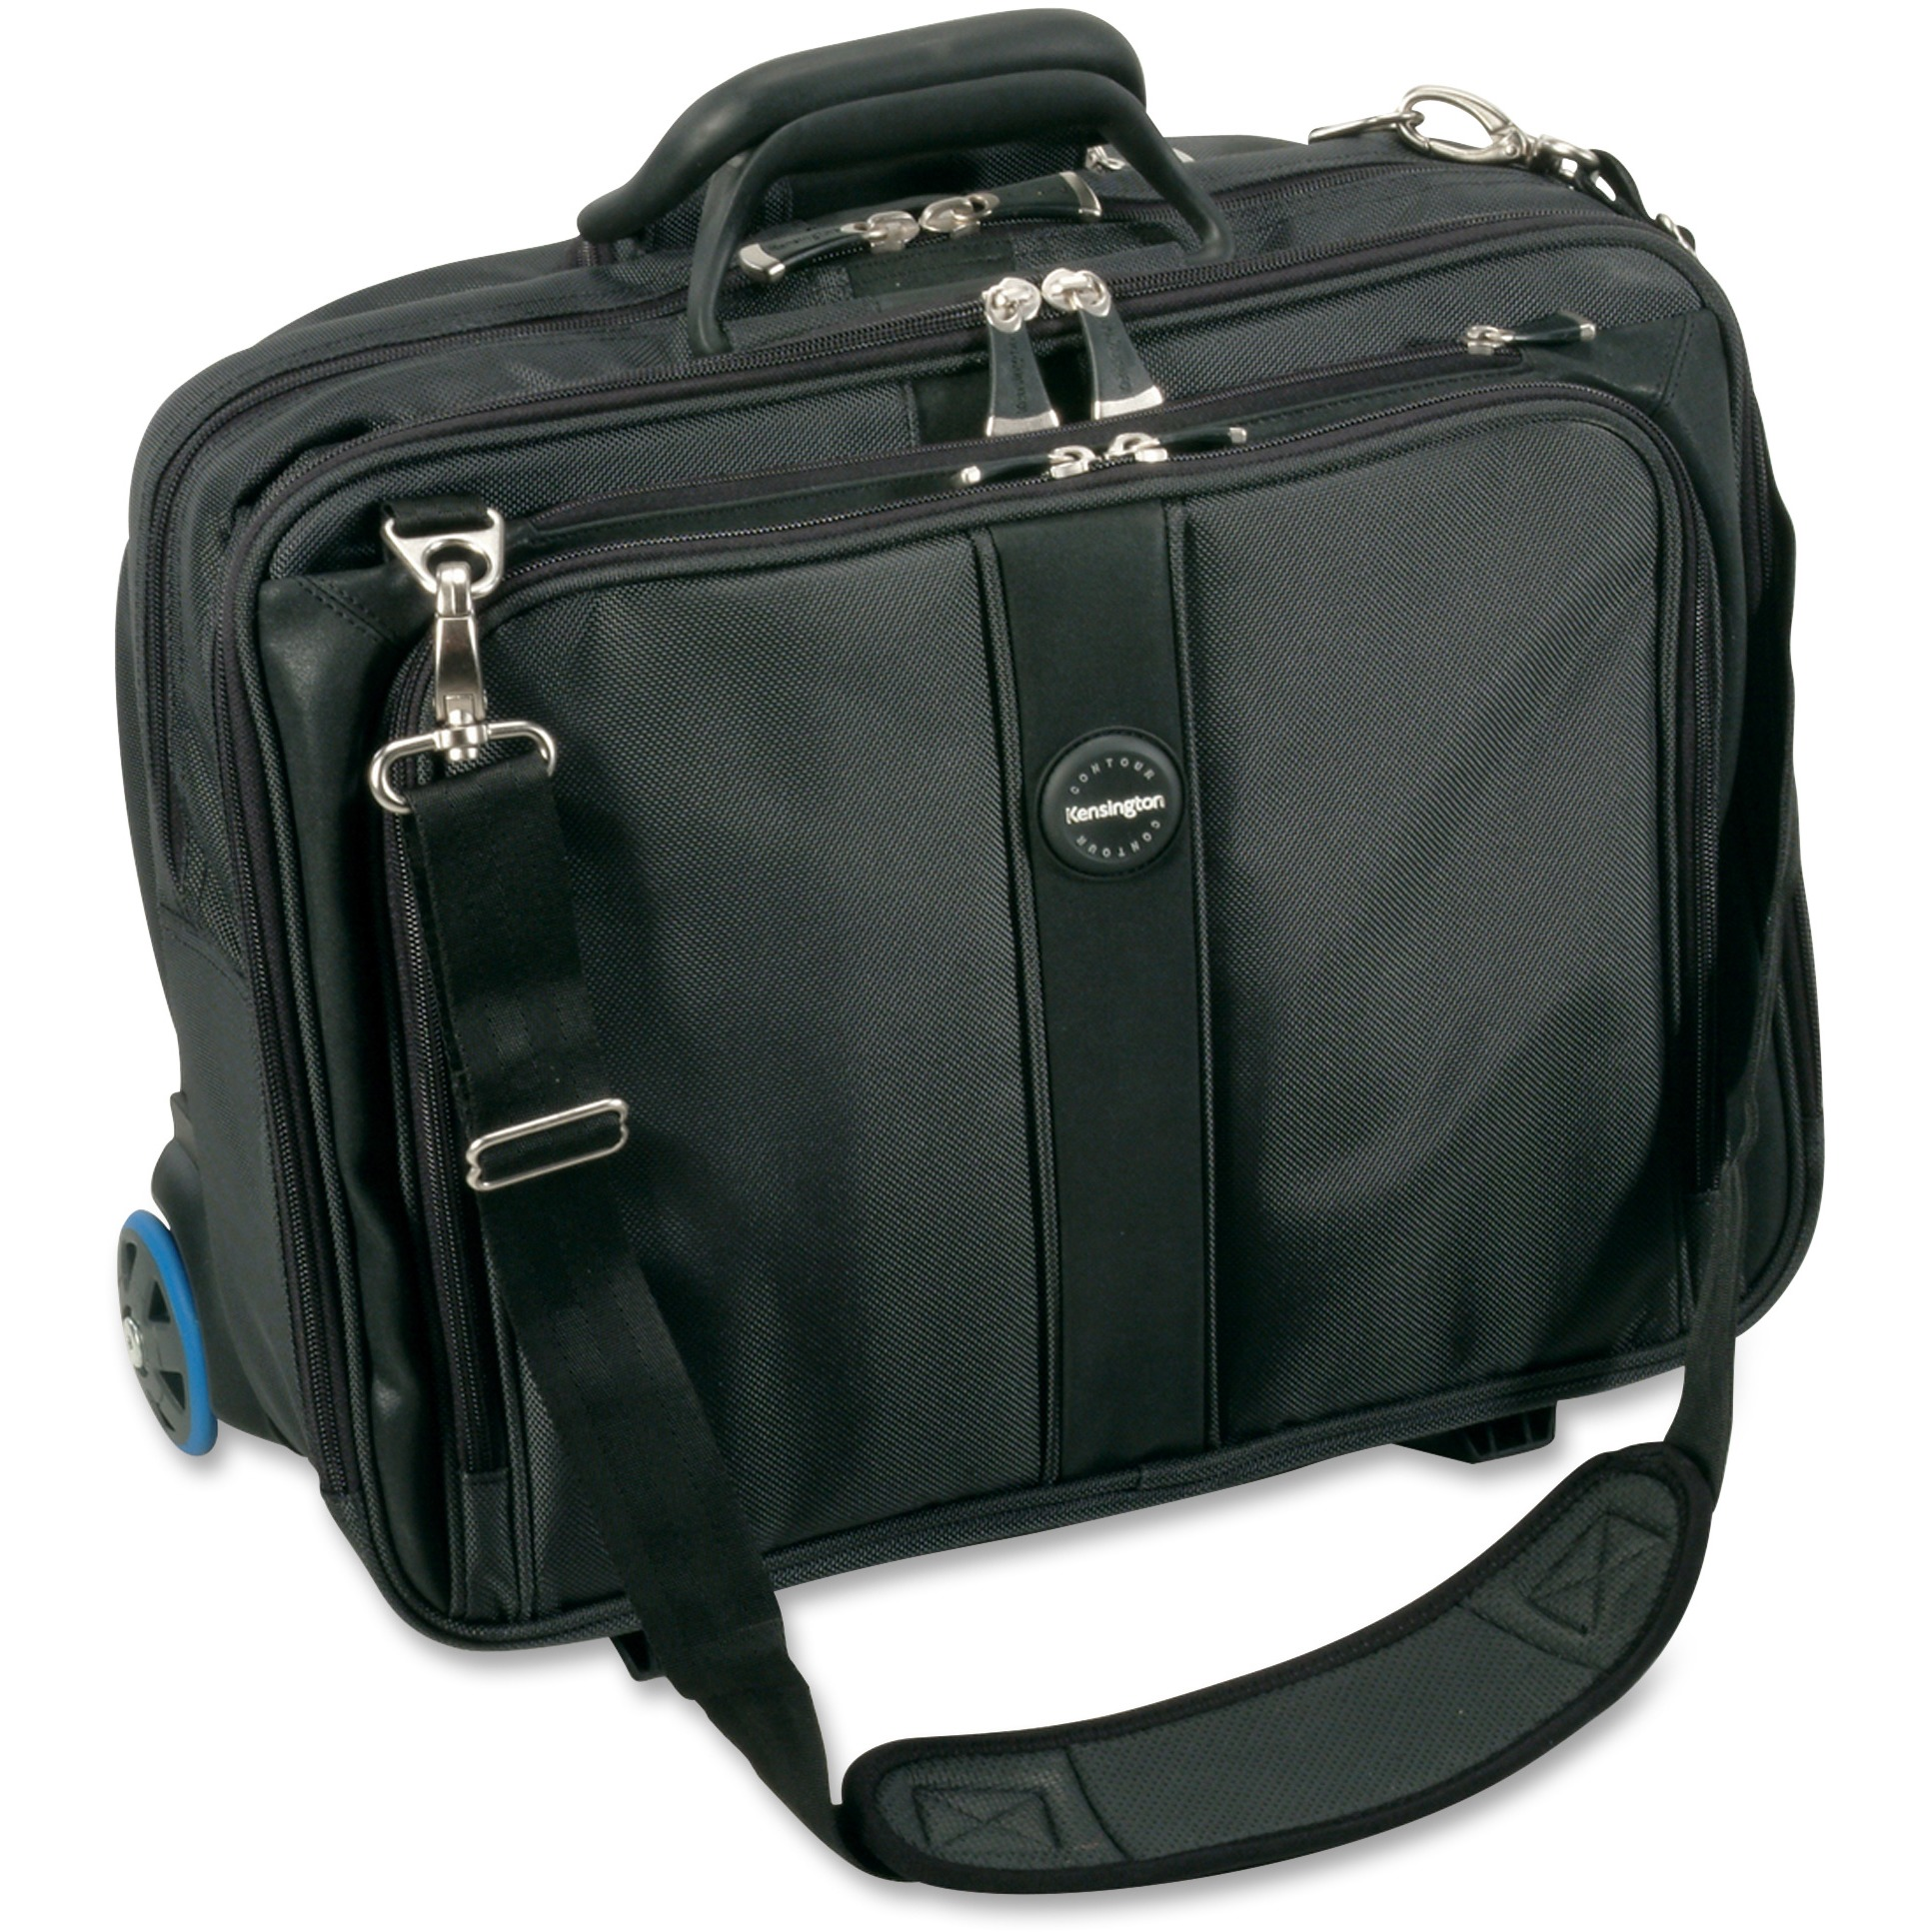 "Kensington Contour Carrying Case (Roller) for 17"" Notebook - Gray"